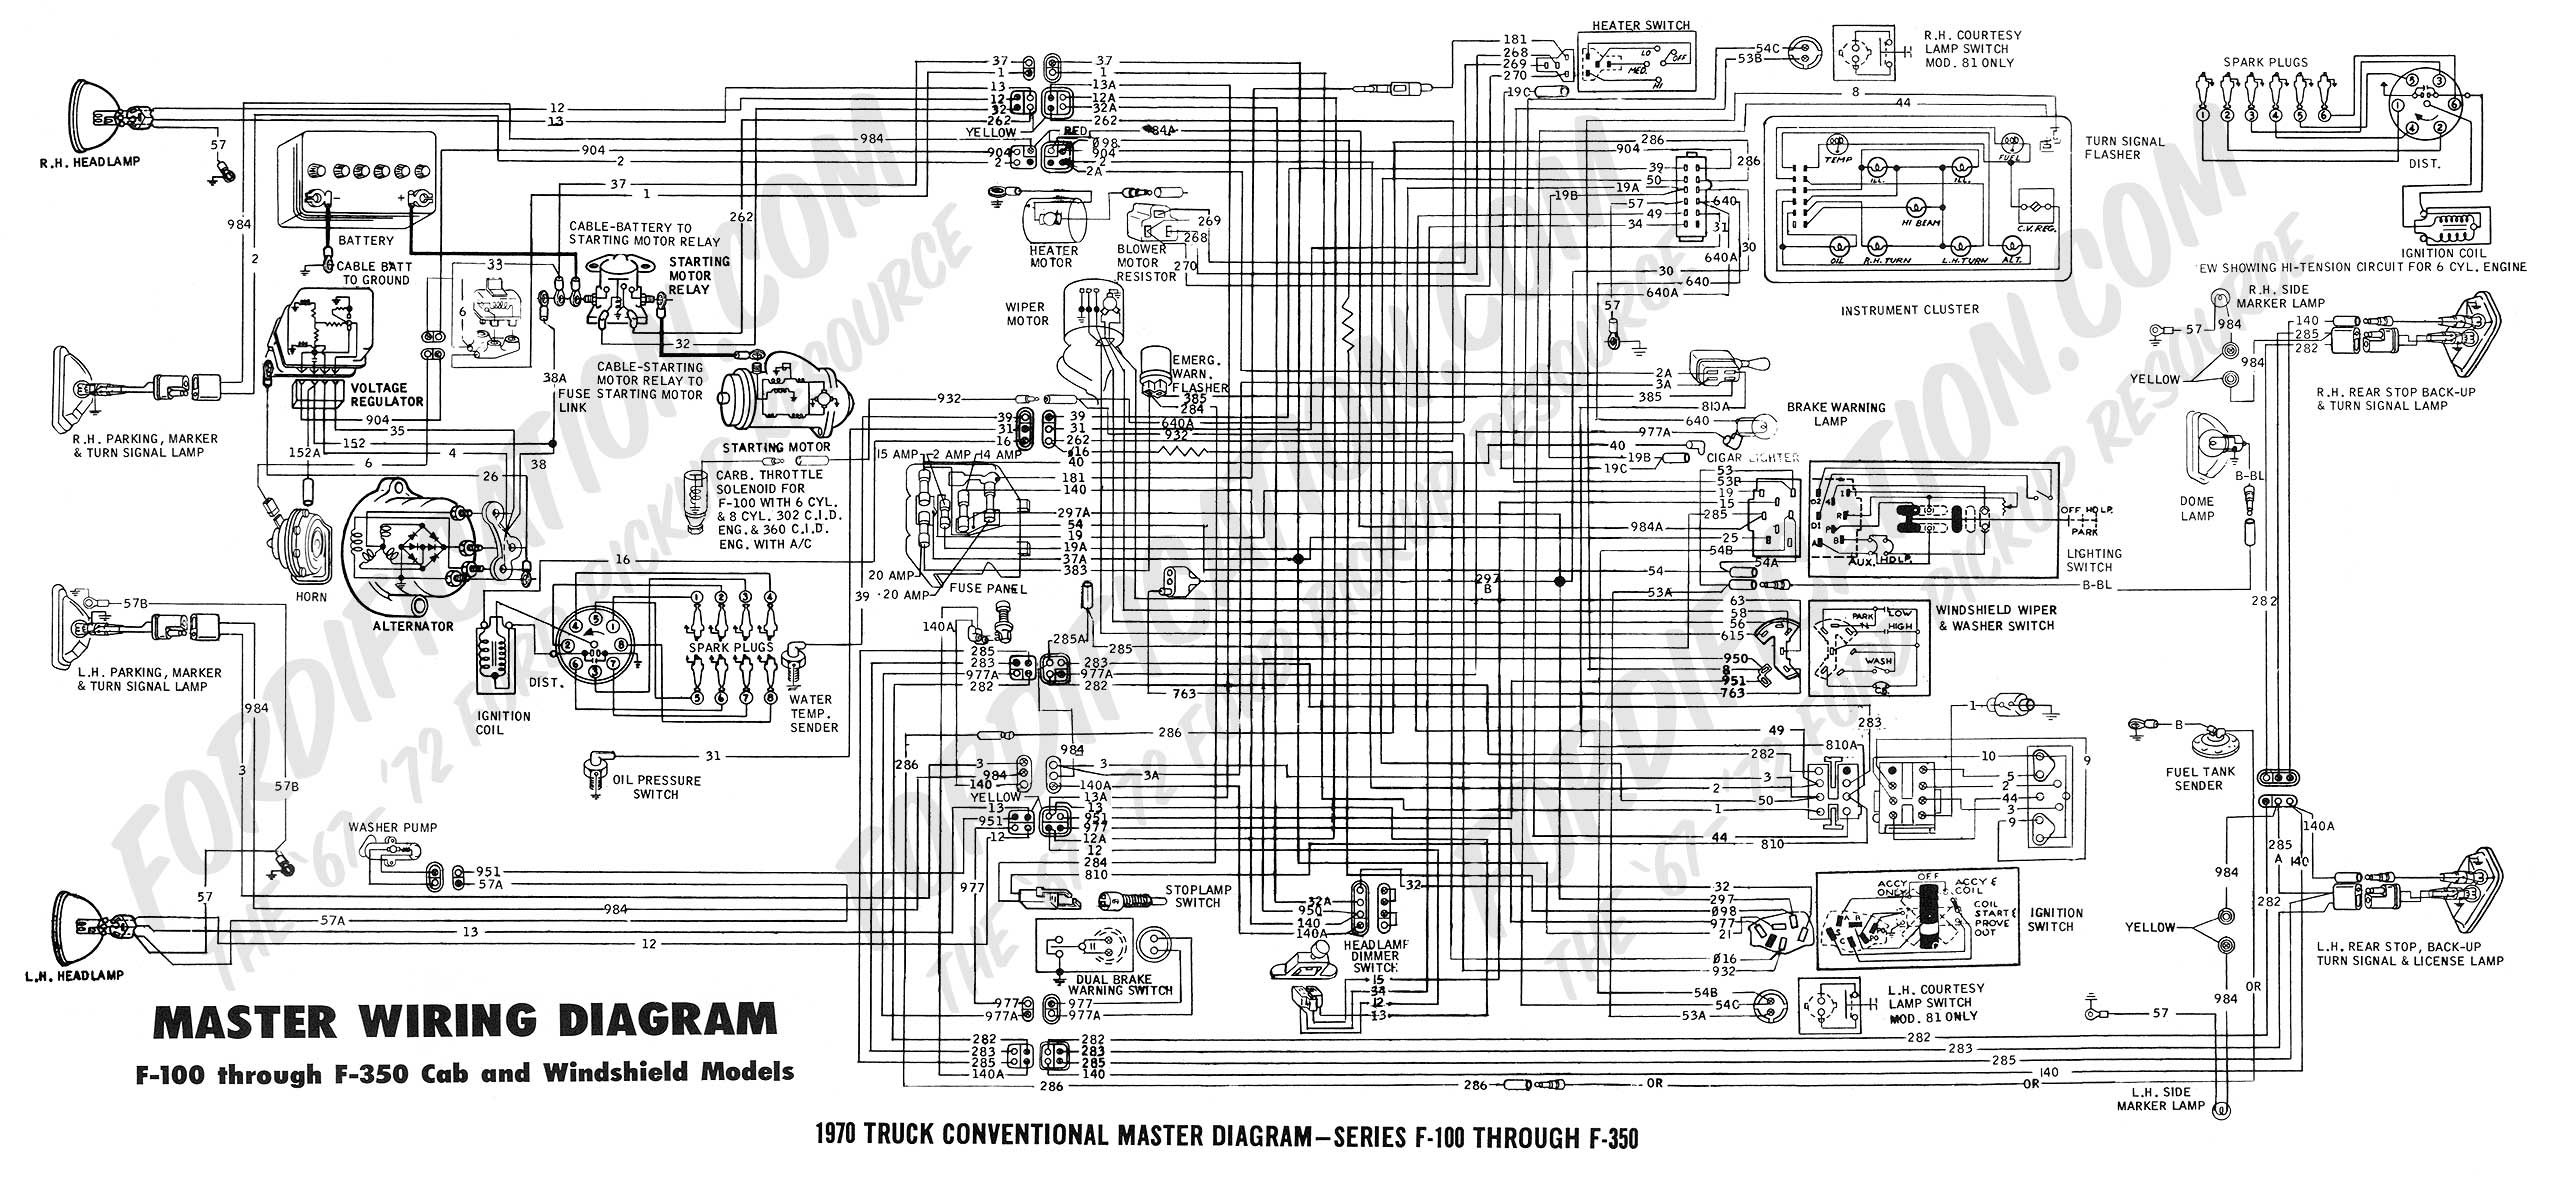 Suzuki Samurai Headlight Wiring Diagram Sidekick Question For 1970 F 100 Please Thanks Ford Truck Enthusiasts Forums Ninja